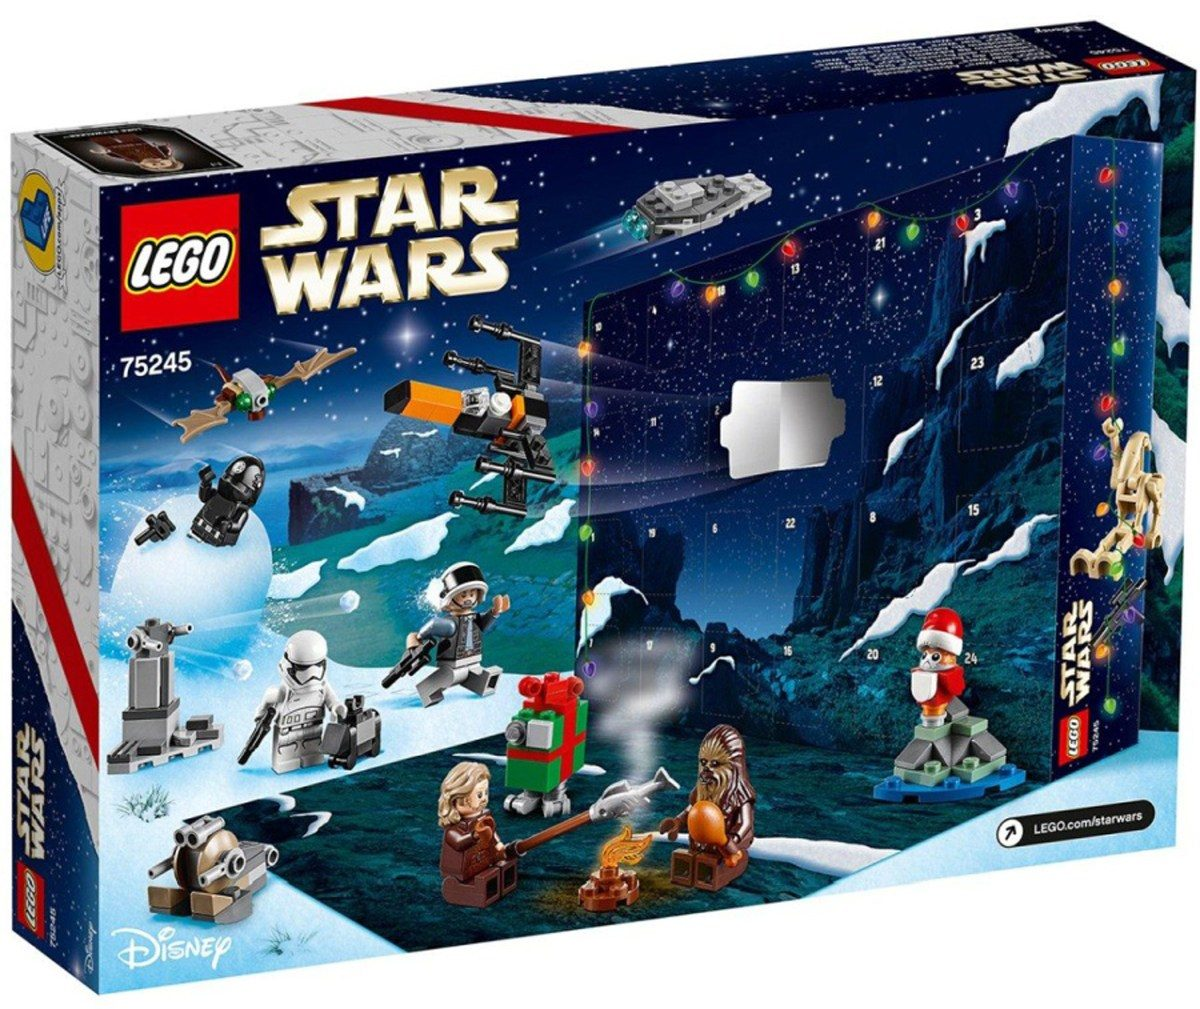 Harry Potter Advent Calendar.Lego S 2019 Advent Calendars Will Include A Brand New Harry Potter